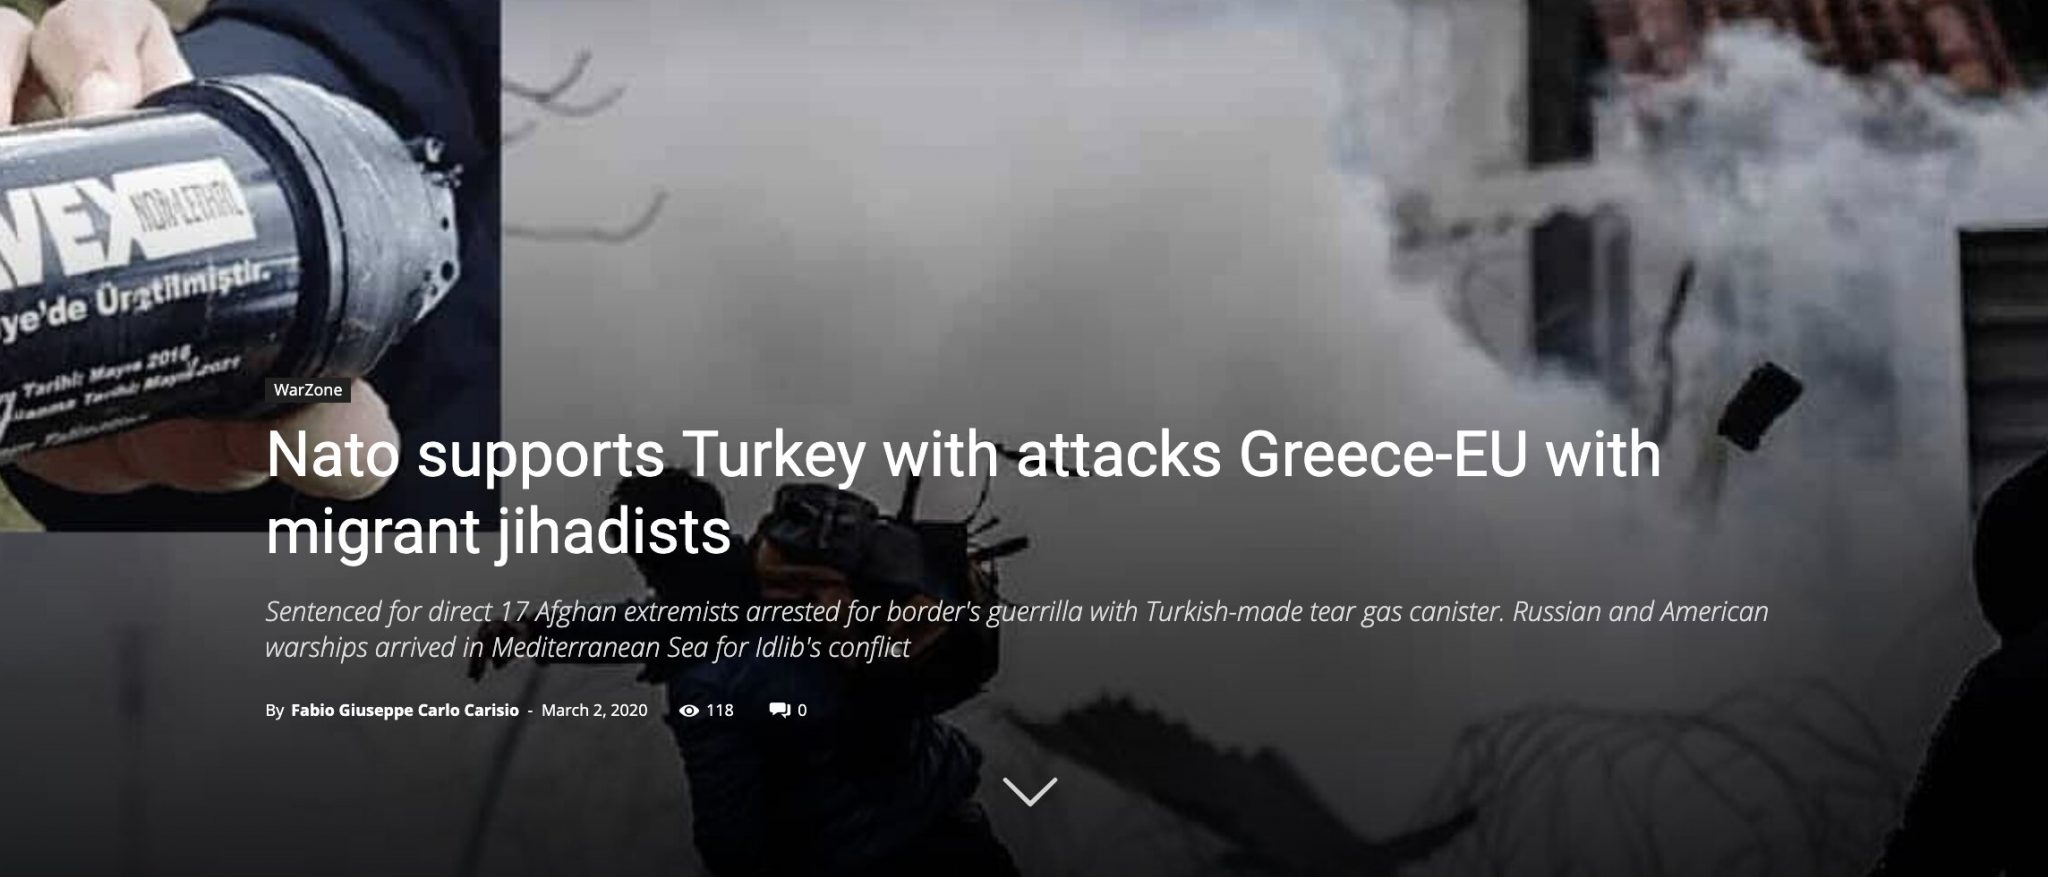 Nato supports Turkey with attacks Greece-EU with migrant jihadists